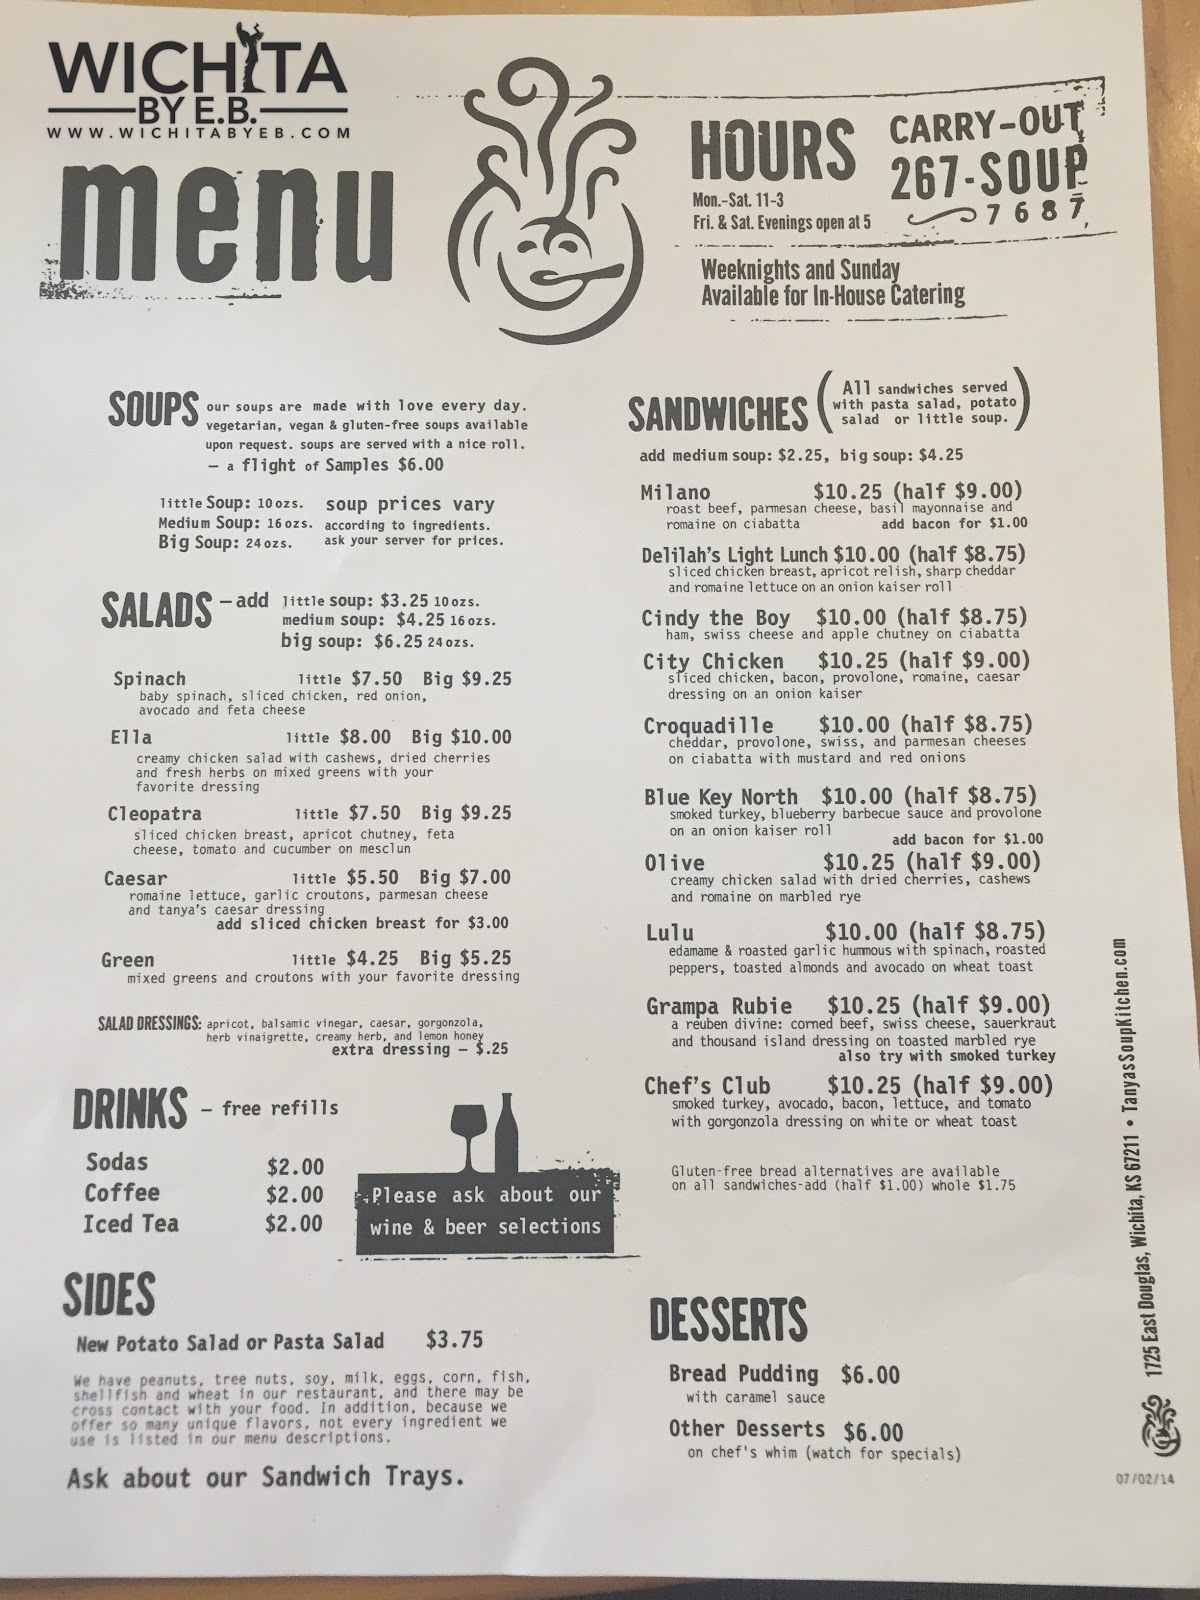 Soup Kitchen Menu Tanyas Soup Kitchen Review 2 Wichita By Eb